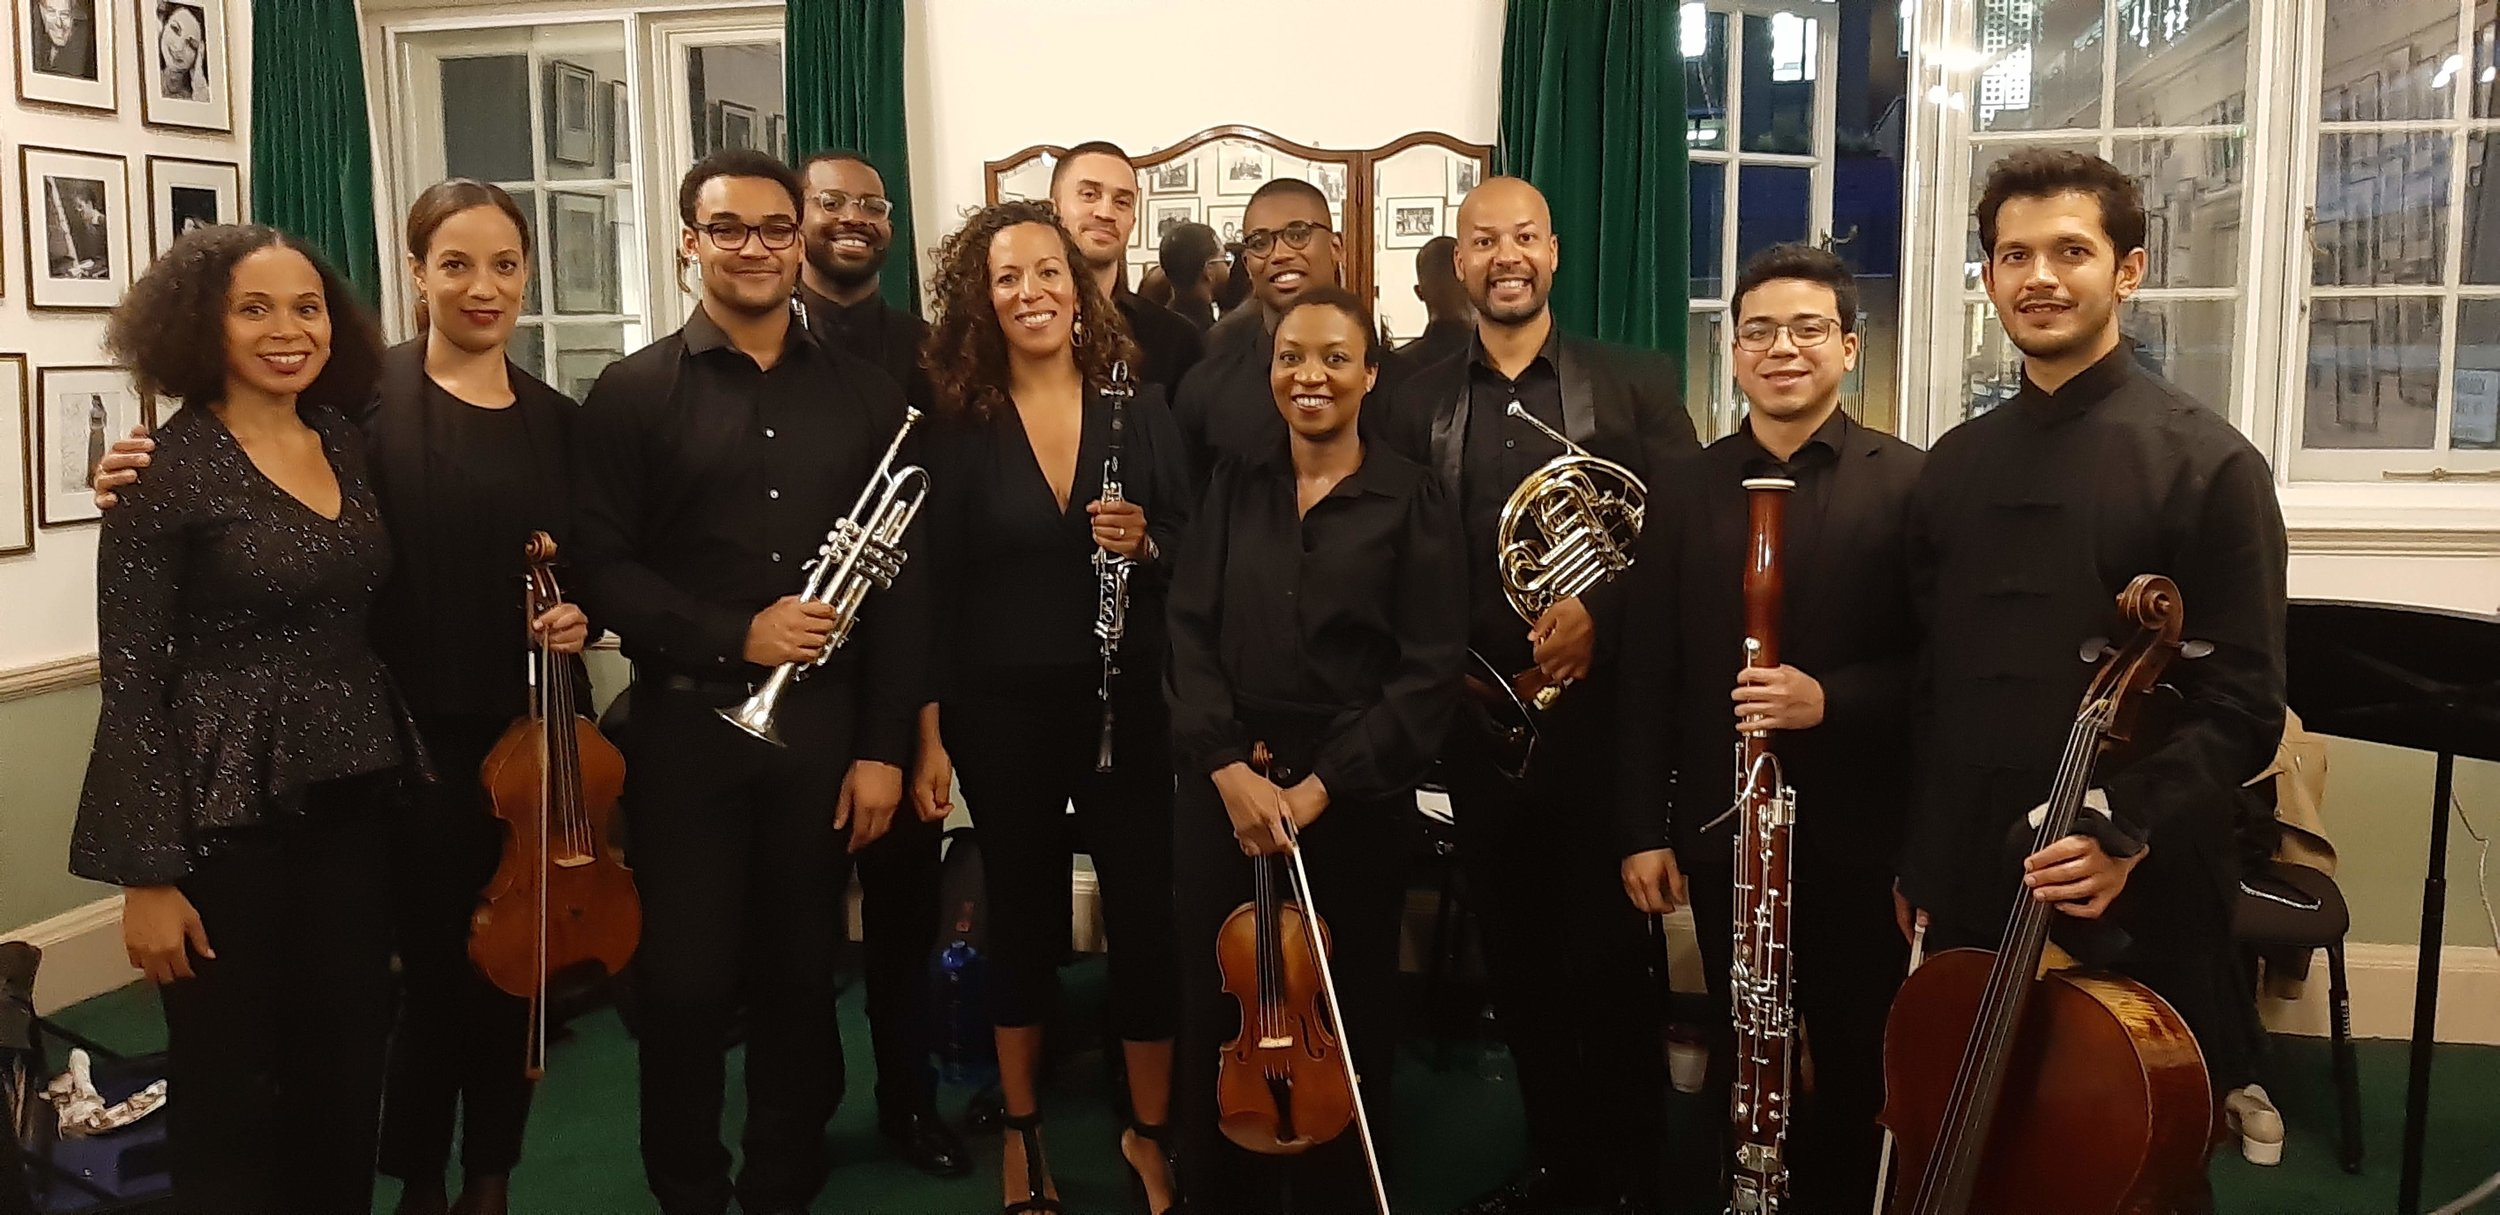 ChinekeEnsemble_WigmoreHall_13June2019_credit Rhoda Lane.jpg